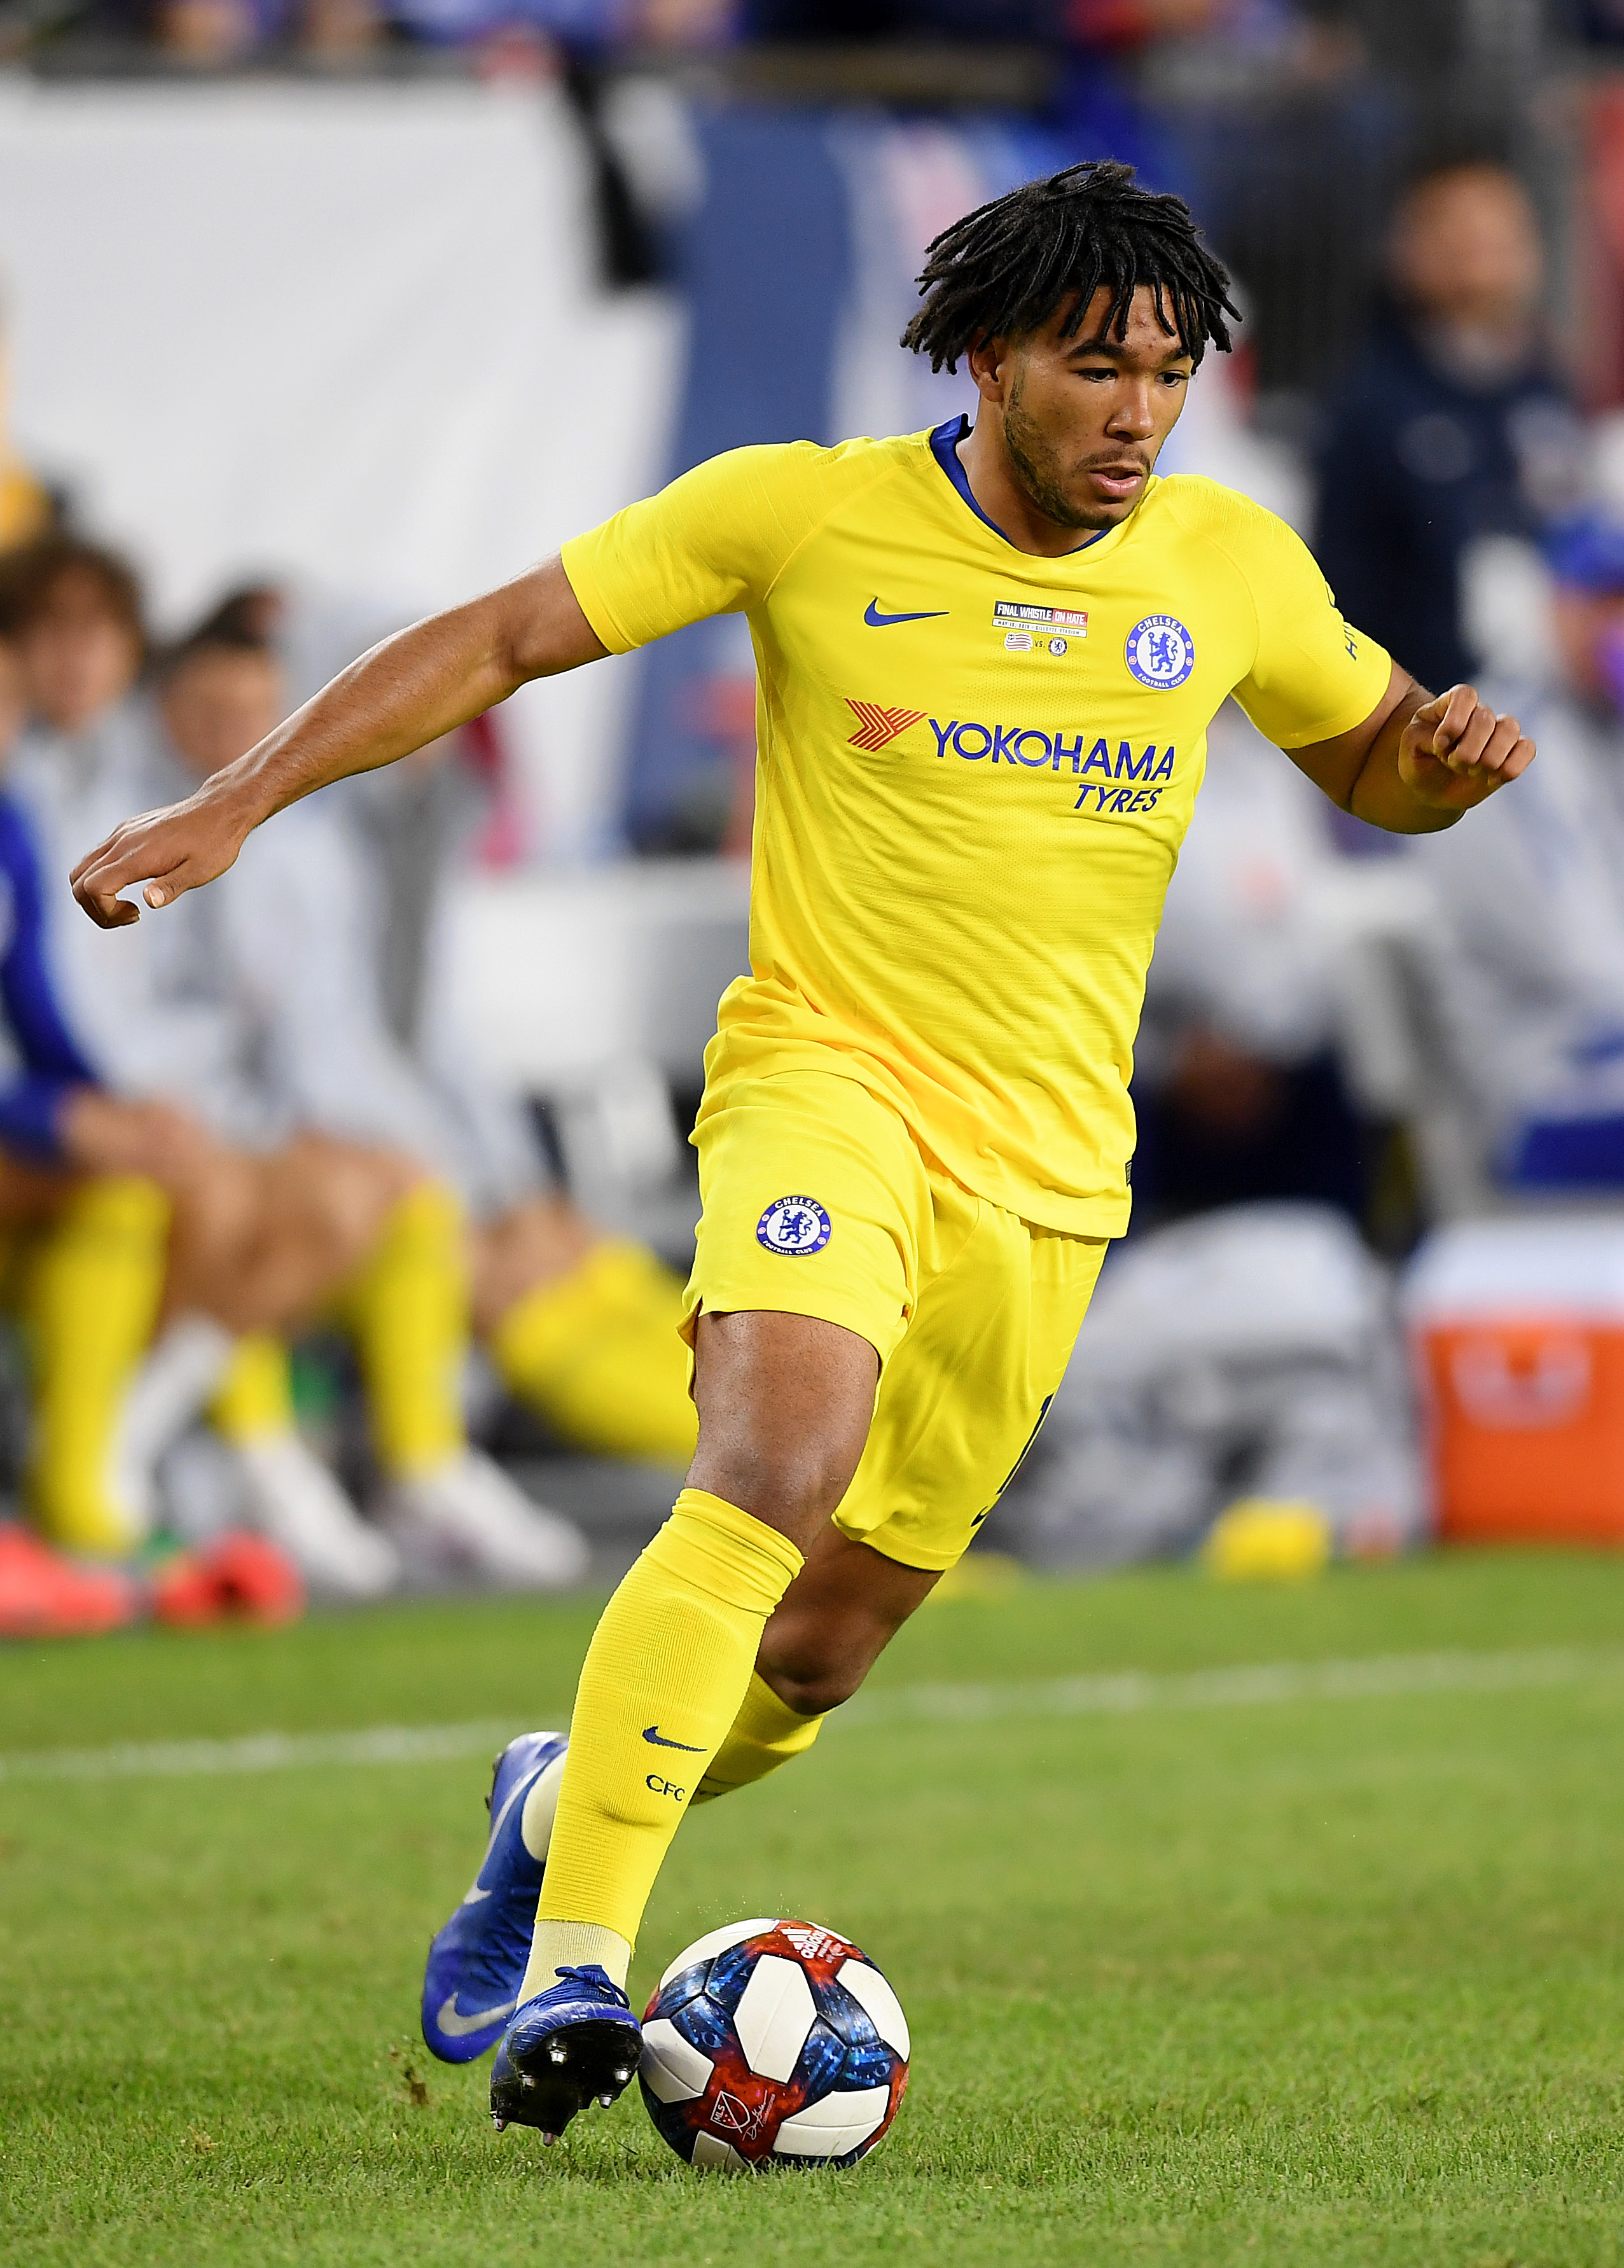 Reece James 'more motivated than ever' to fulfill Chelsea dream